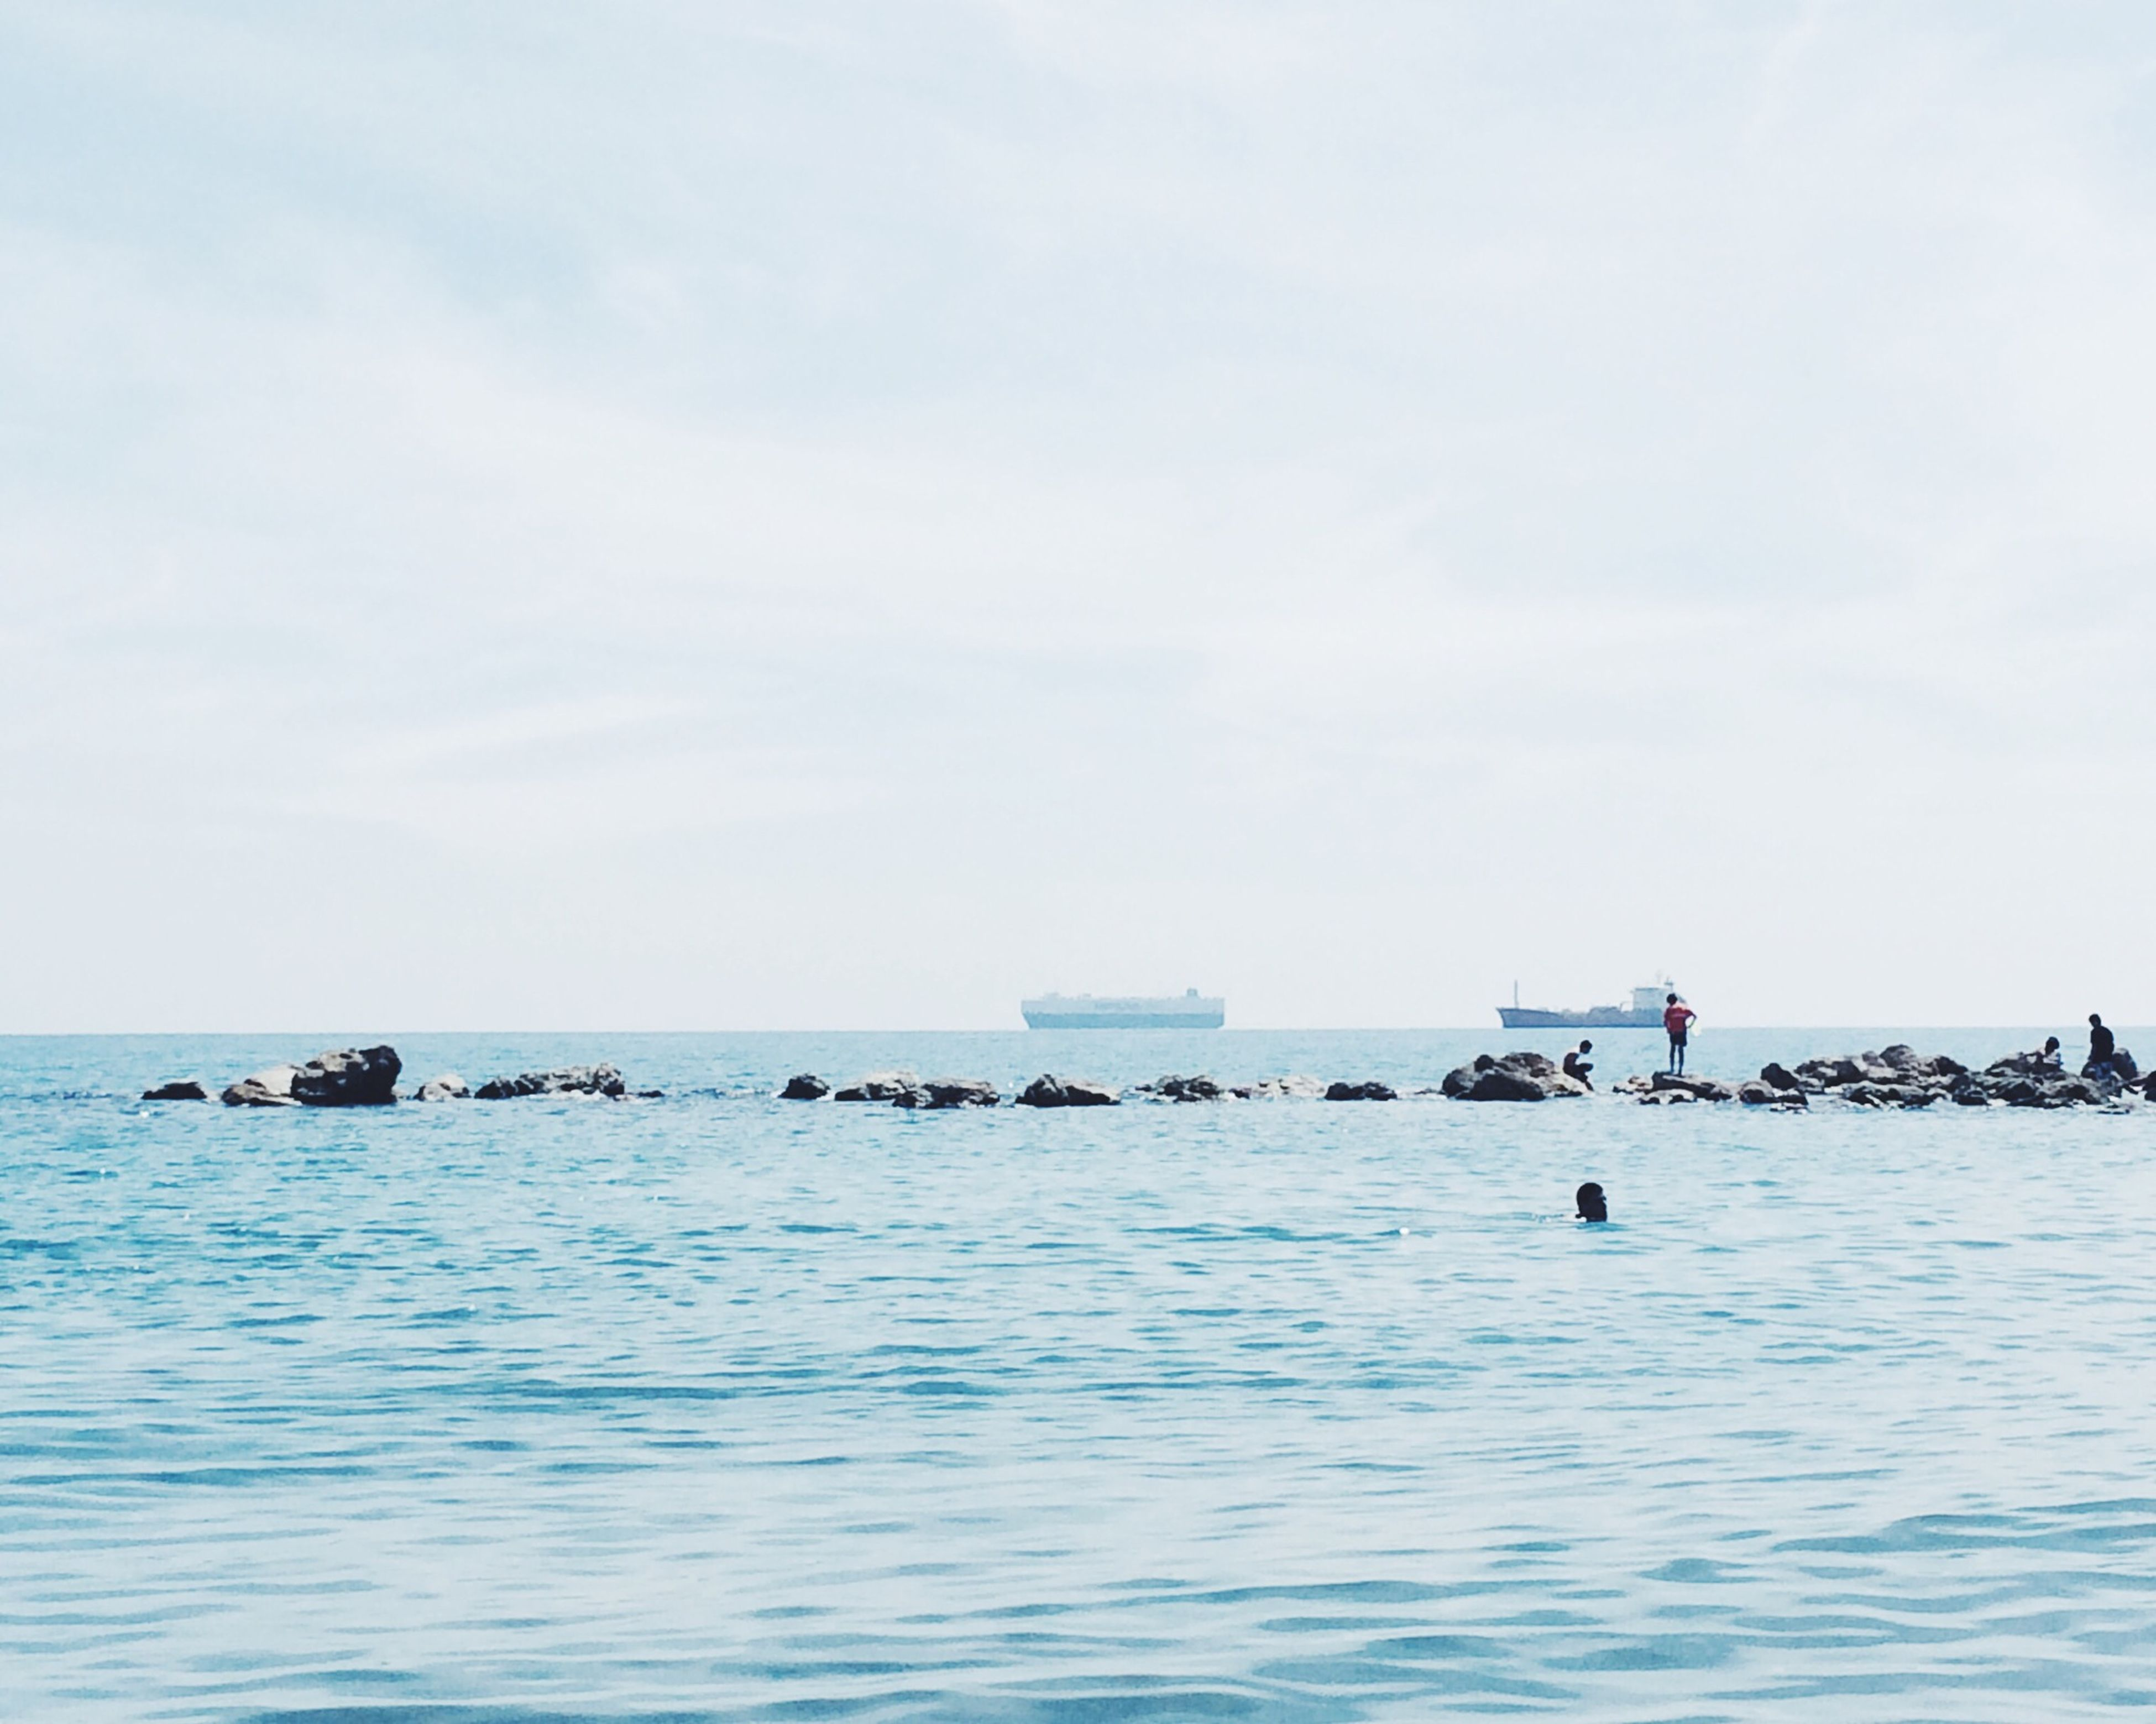 sea, water, horizon over water, waterfront, tranquil scene, tranquility, sky, scenics, nautical vessel, beauty in nature, nature, rippled, transportation, boat, idyllic, incidental people, beach, day, mode of transport, seascape